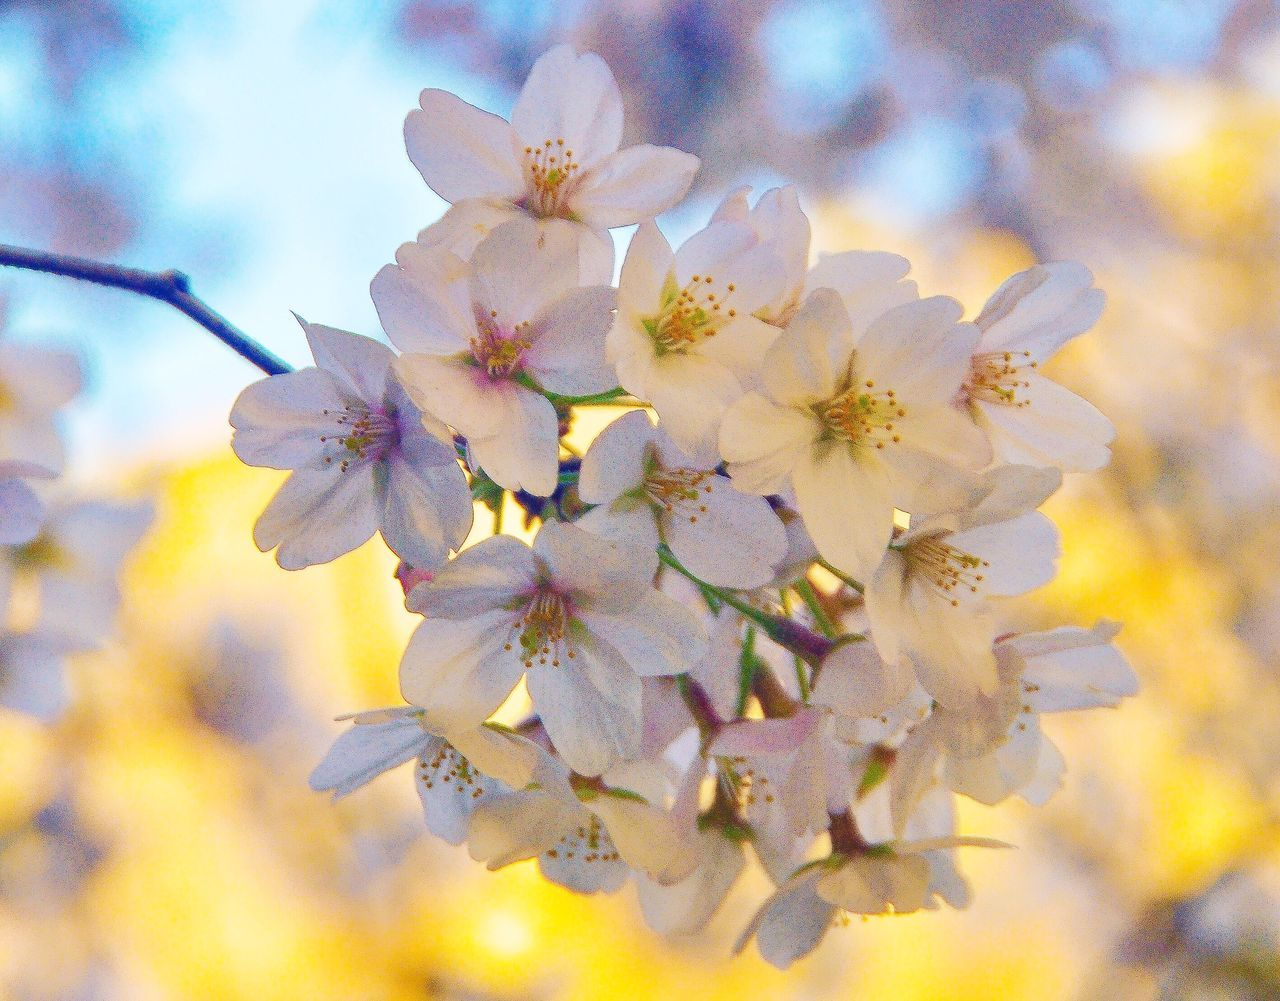 flower, fragility, beauty in nature, springtime, growth, blossom, freshness, petal, nature, tree, flower head, white color, apple blossom, orchard, apple tree, no people, botany, twig, branch, stamen, day, close-up, pollen, outdoors, blooming, sky